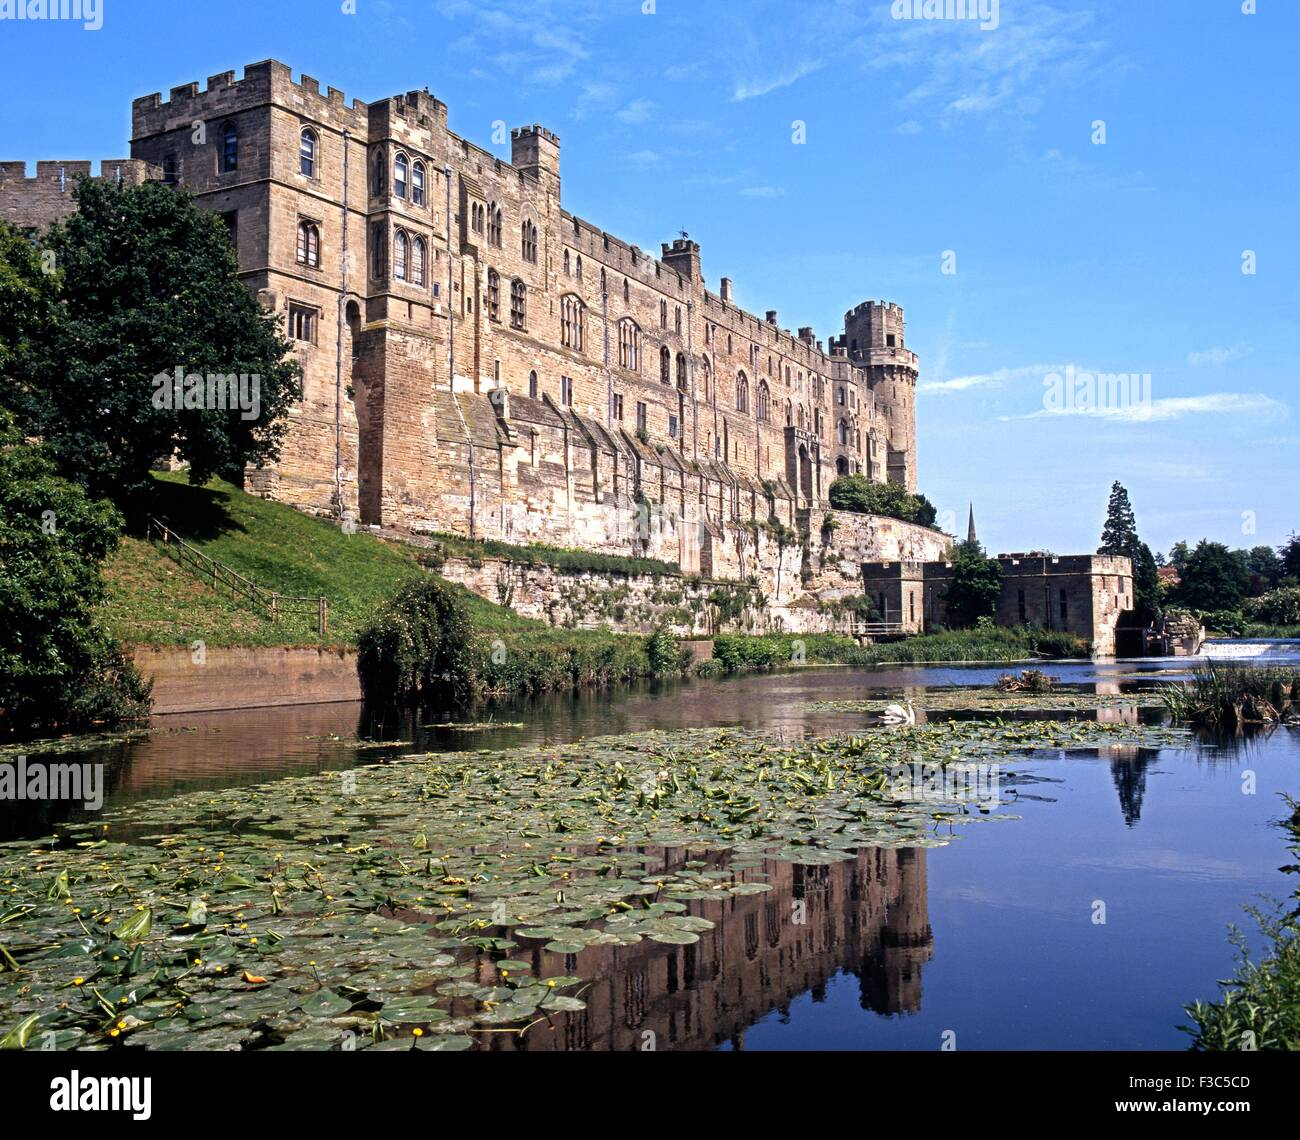 View of the Medieval castle alongside the River Avon, Warwick, Warwickshire, England, UK, Western Europe. - Stock Image